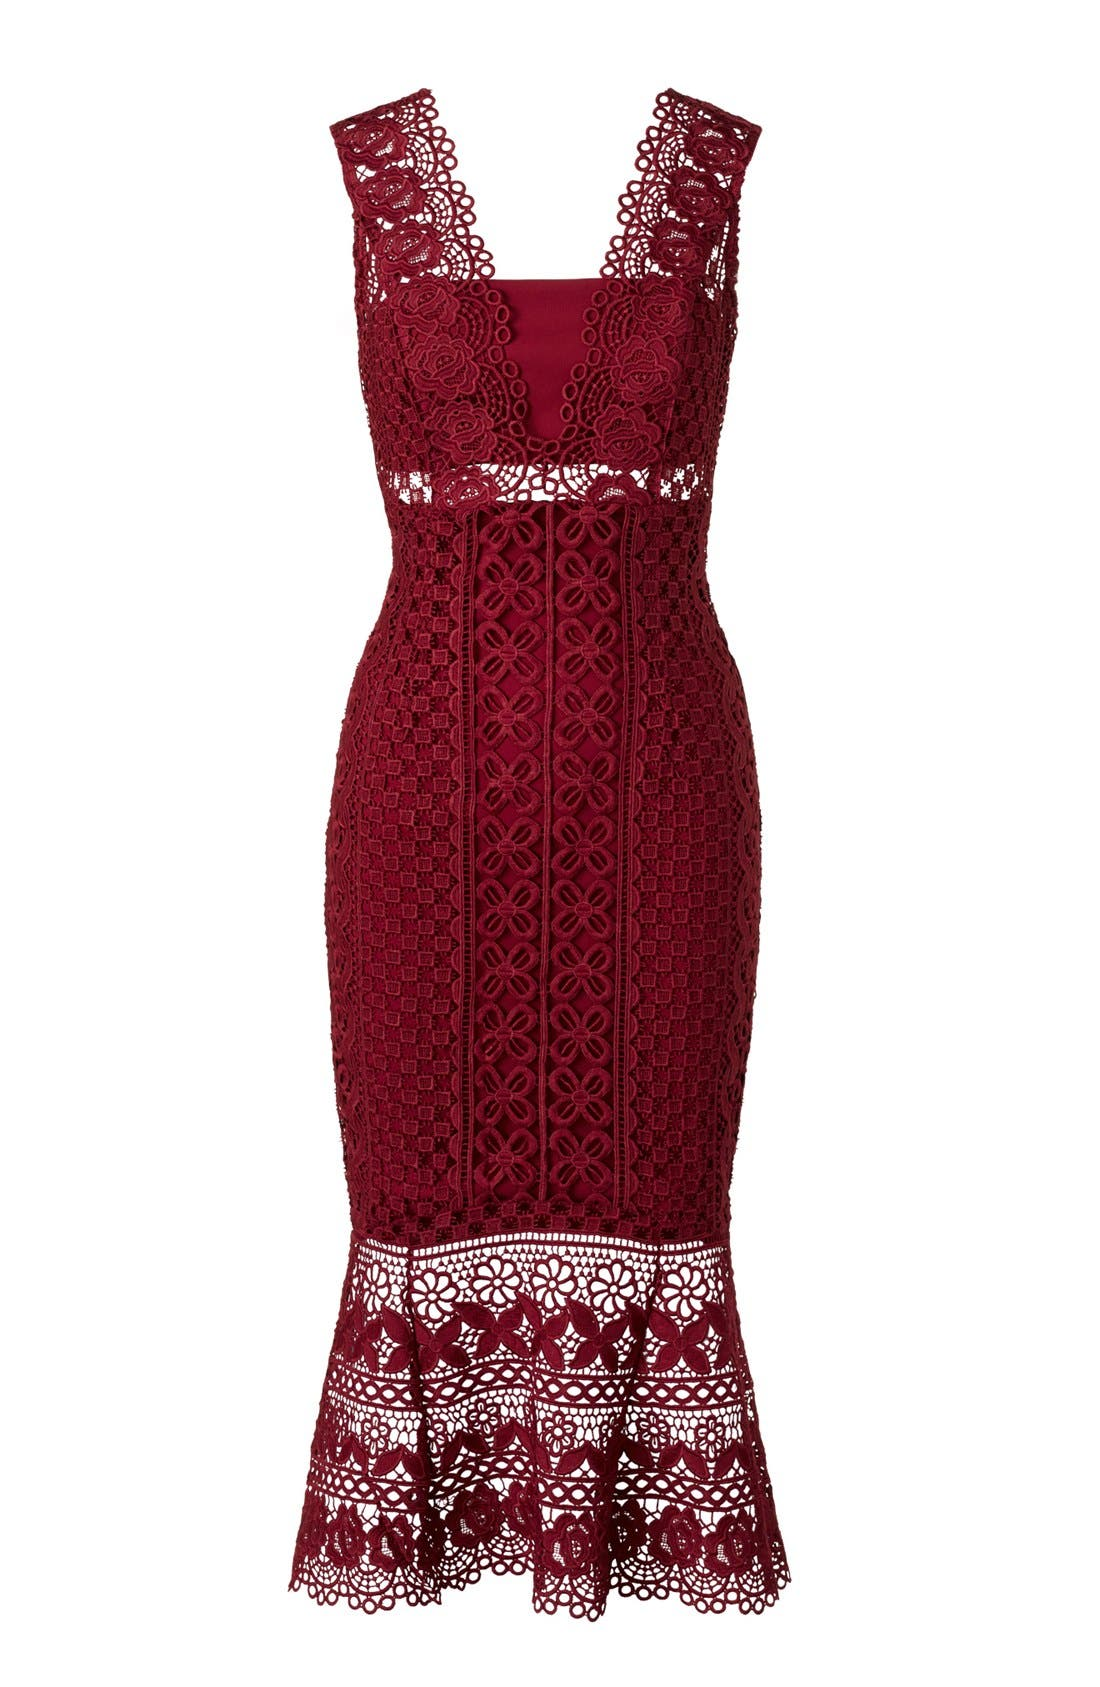 Odyssey Lace Midi Dress,                             Alternate thumbnail 6, color,                             110